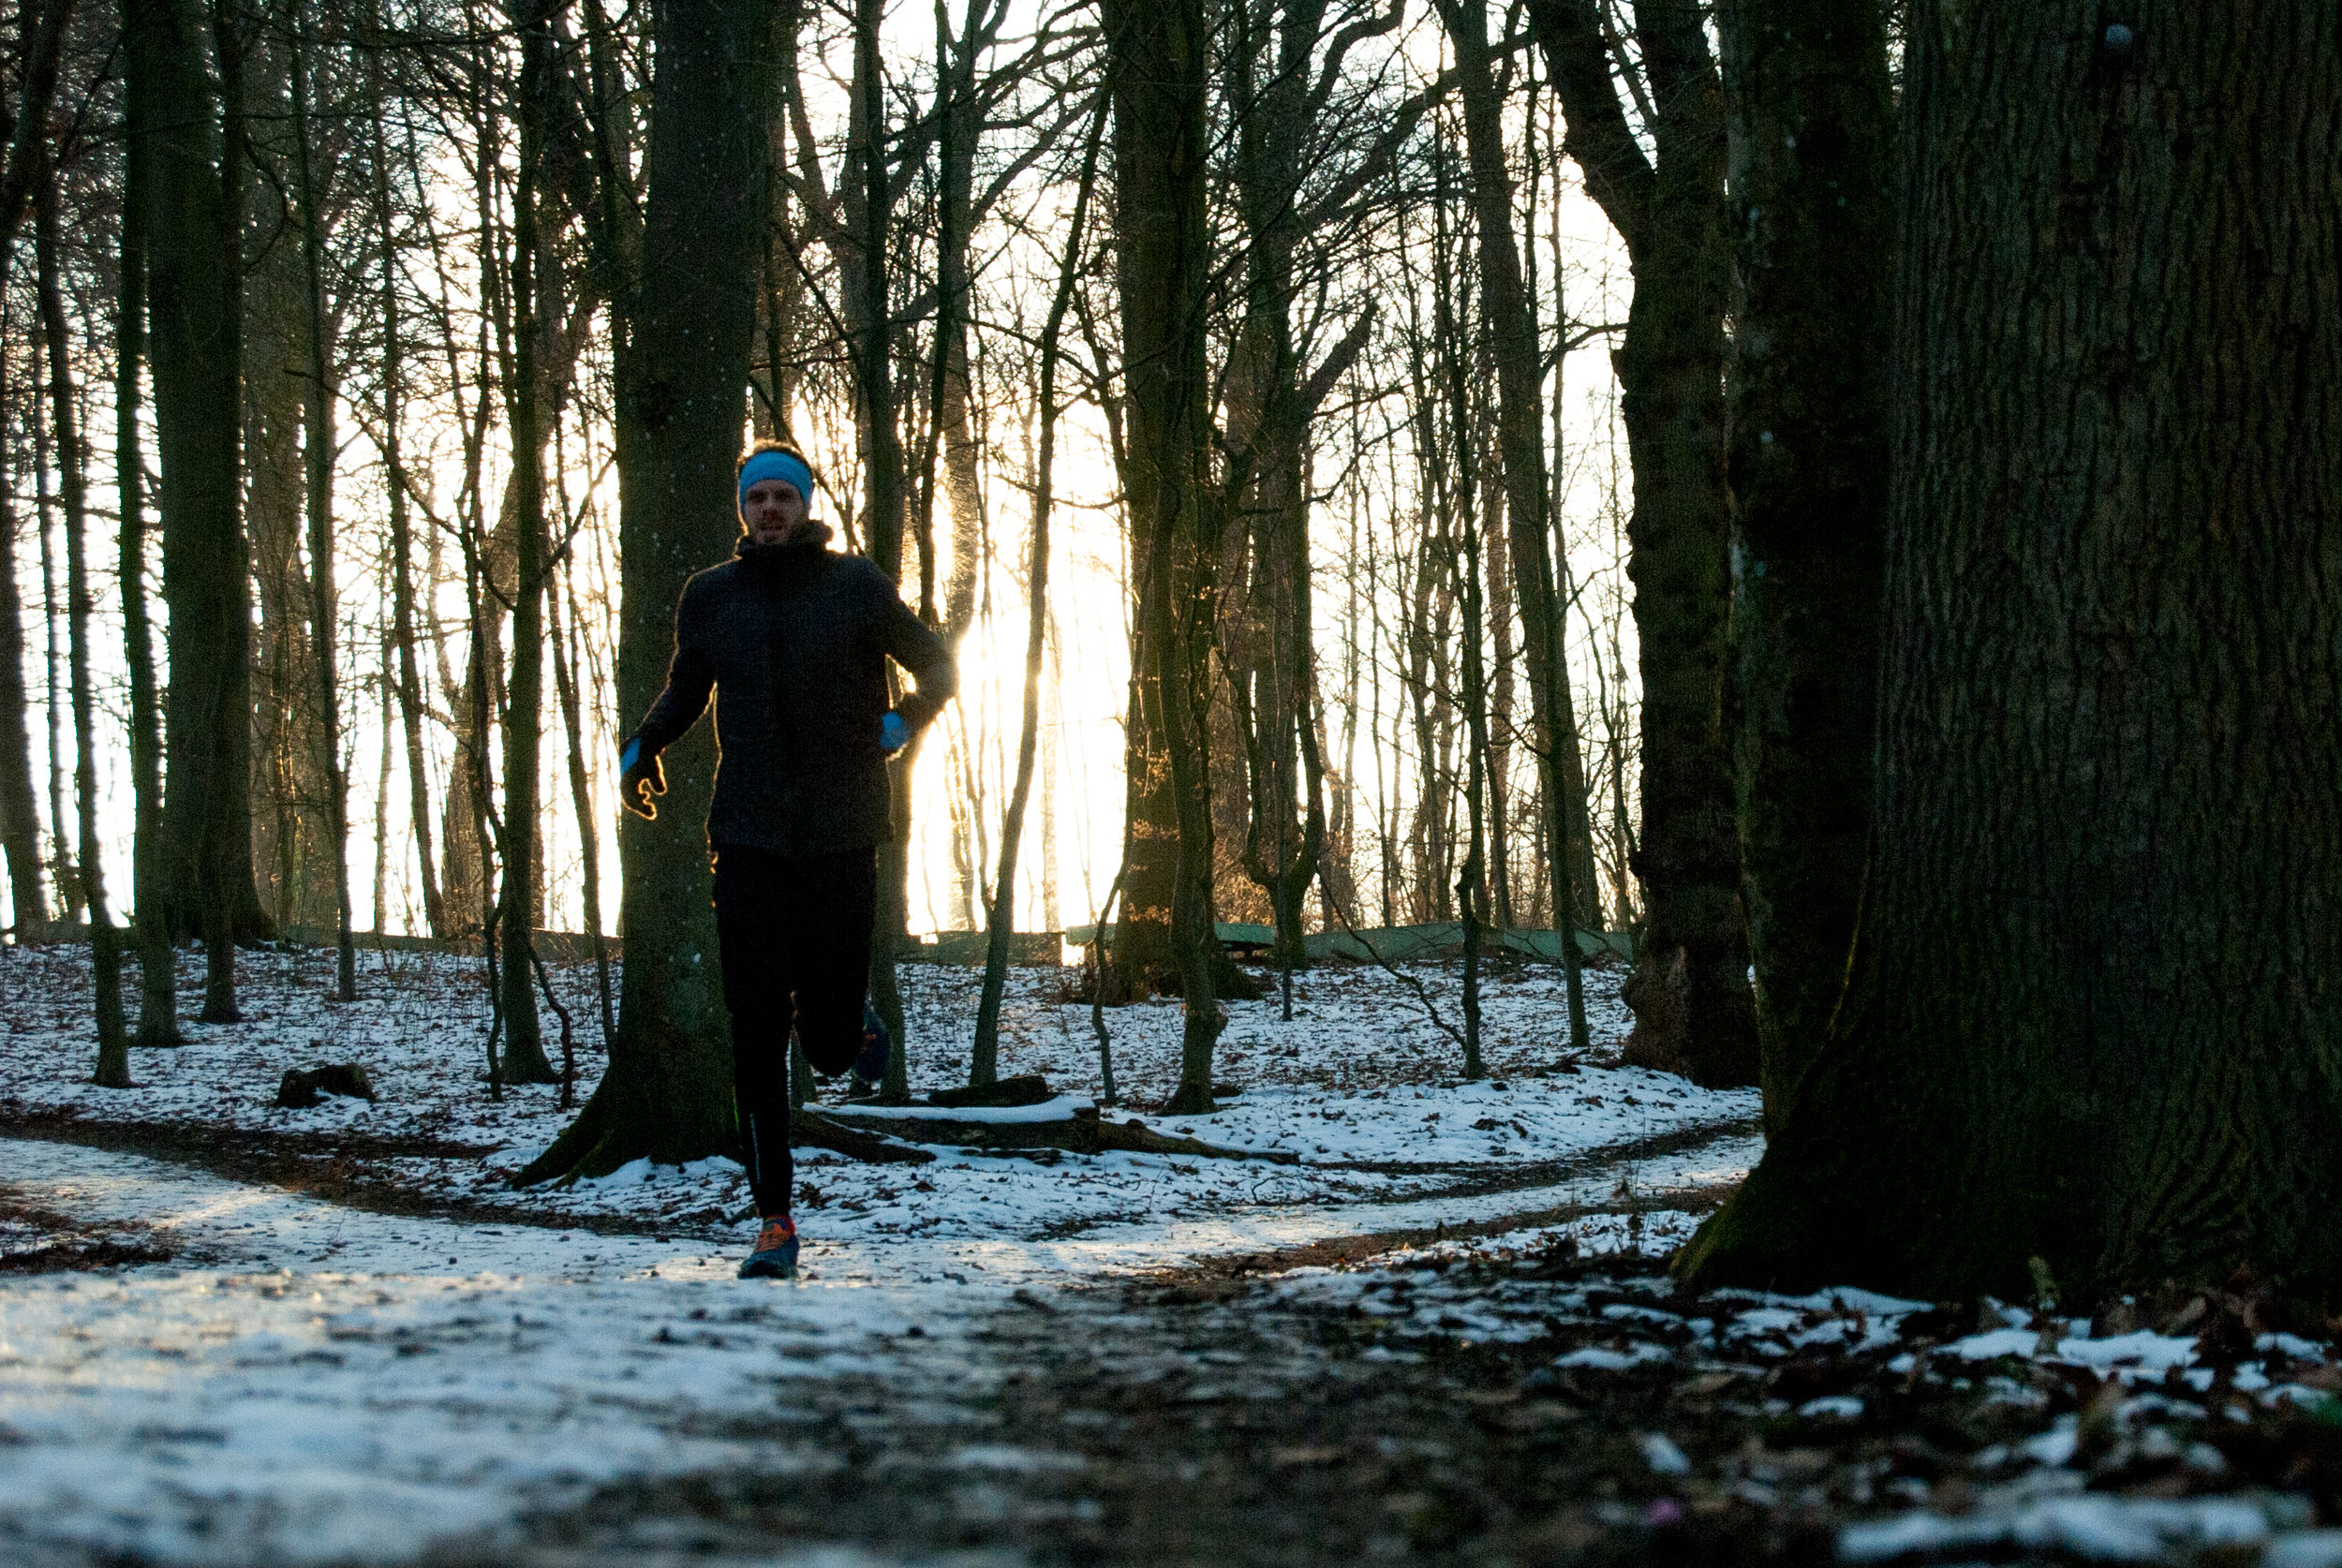 During the snow period in February the trail was covered in slippery snow. But running during sunsets are always a nice experience anyways, so I just had to suck it up and get out there in order to experience nature's beauty.